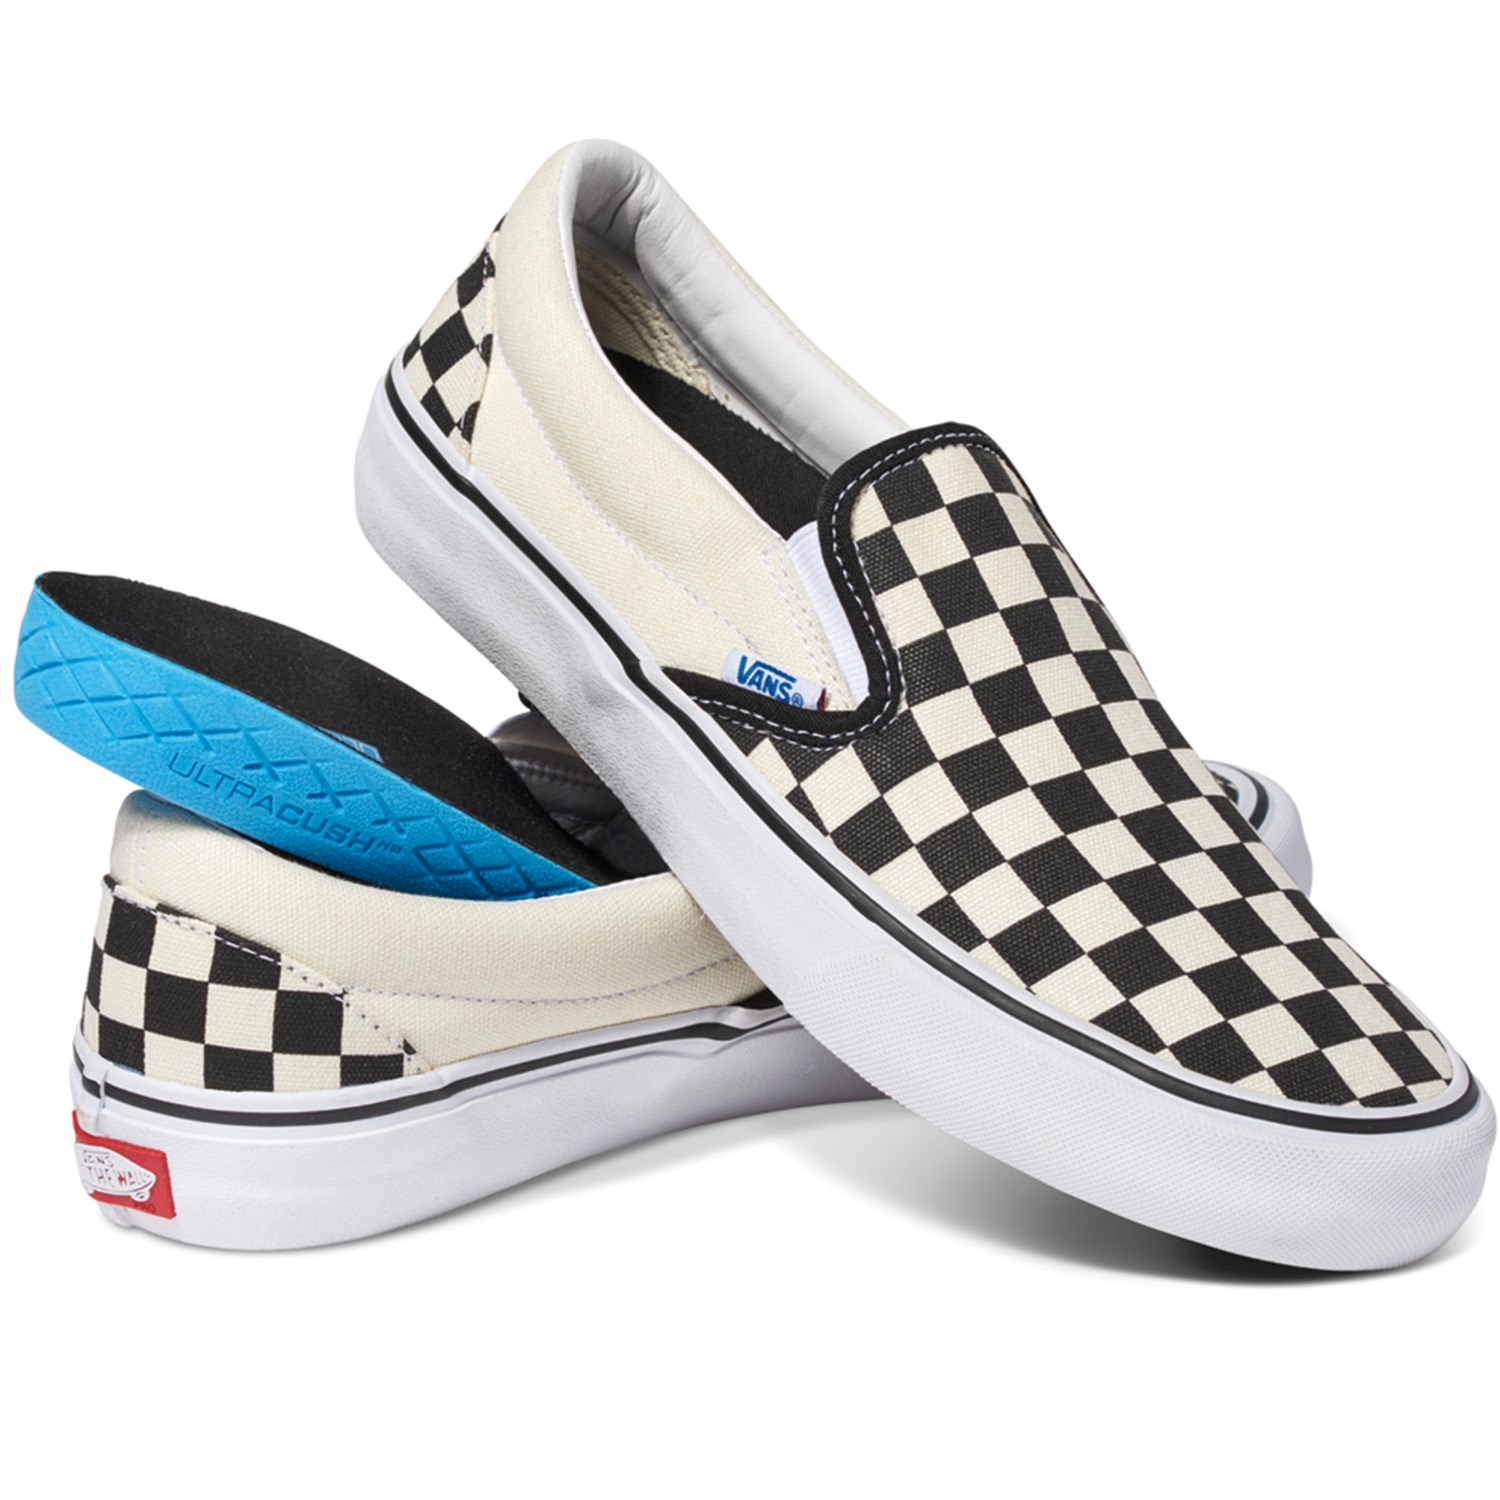 ac50218bd4add7 Vans Slip-On Pro 50th Anniversary Shoes